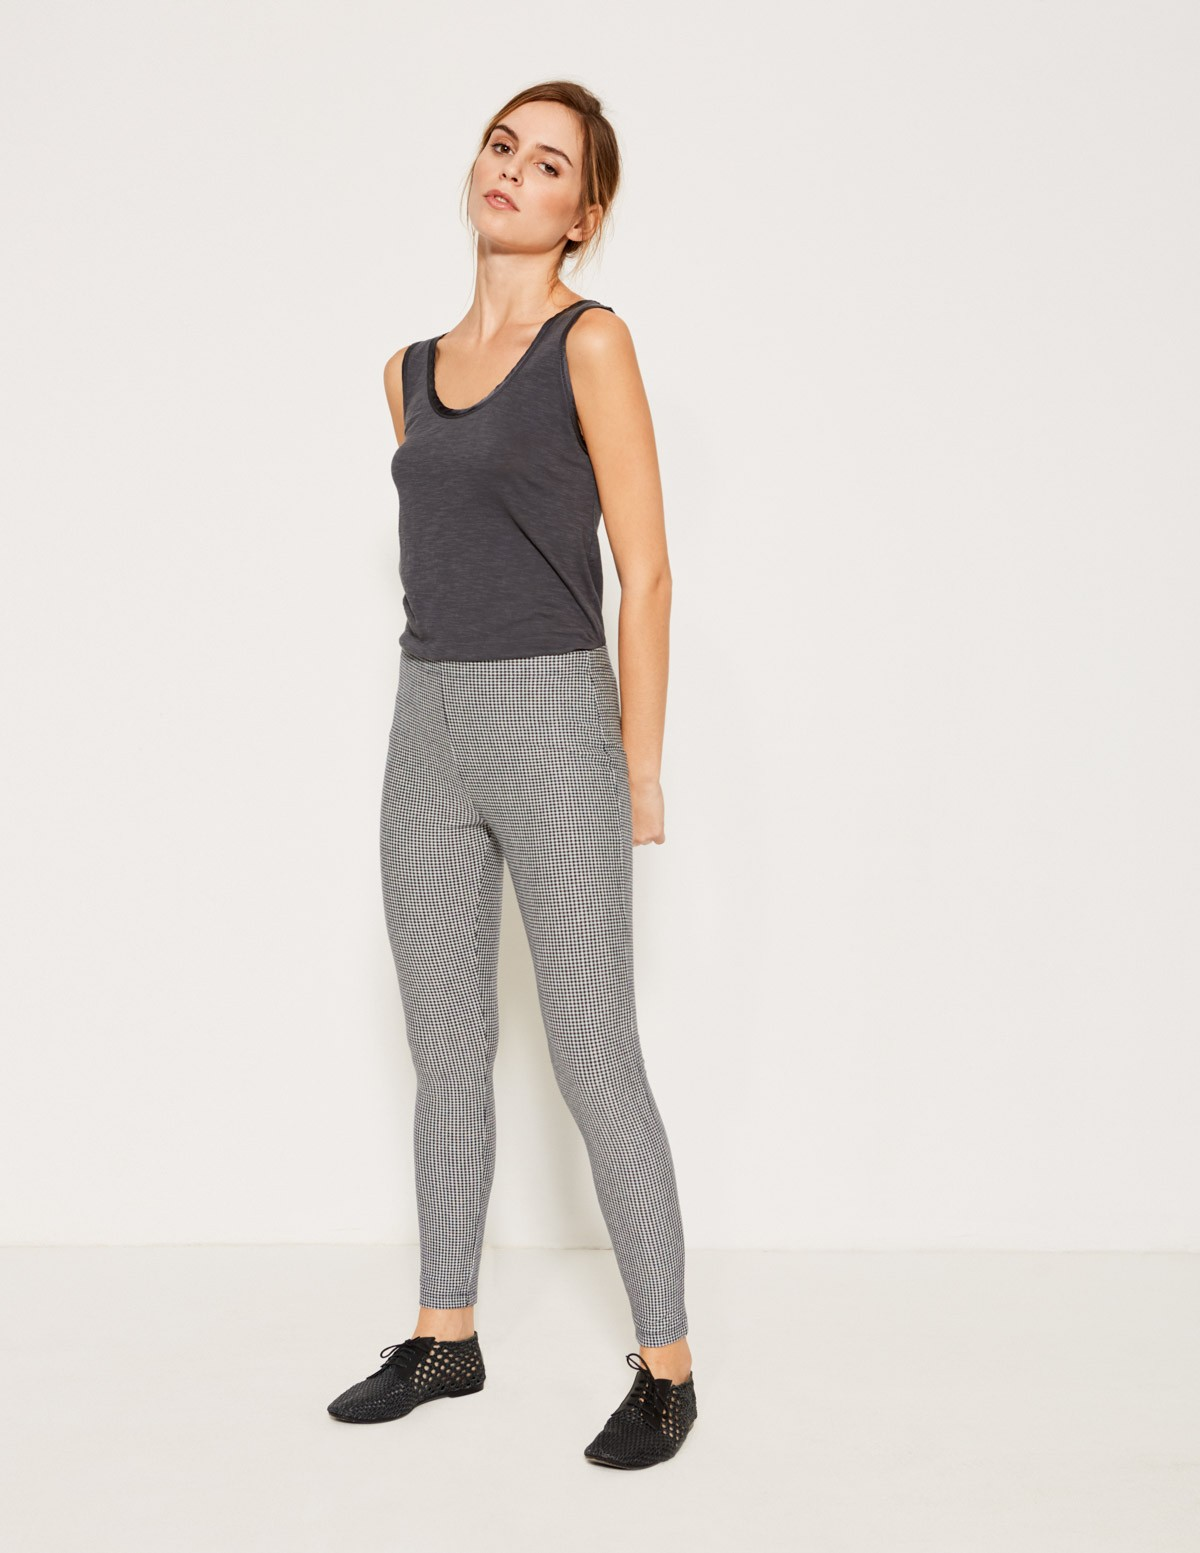 Leggings cuadros vichy